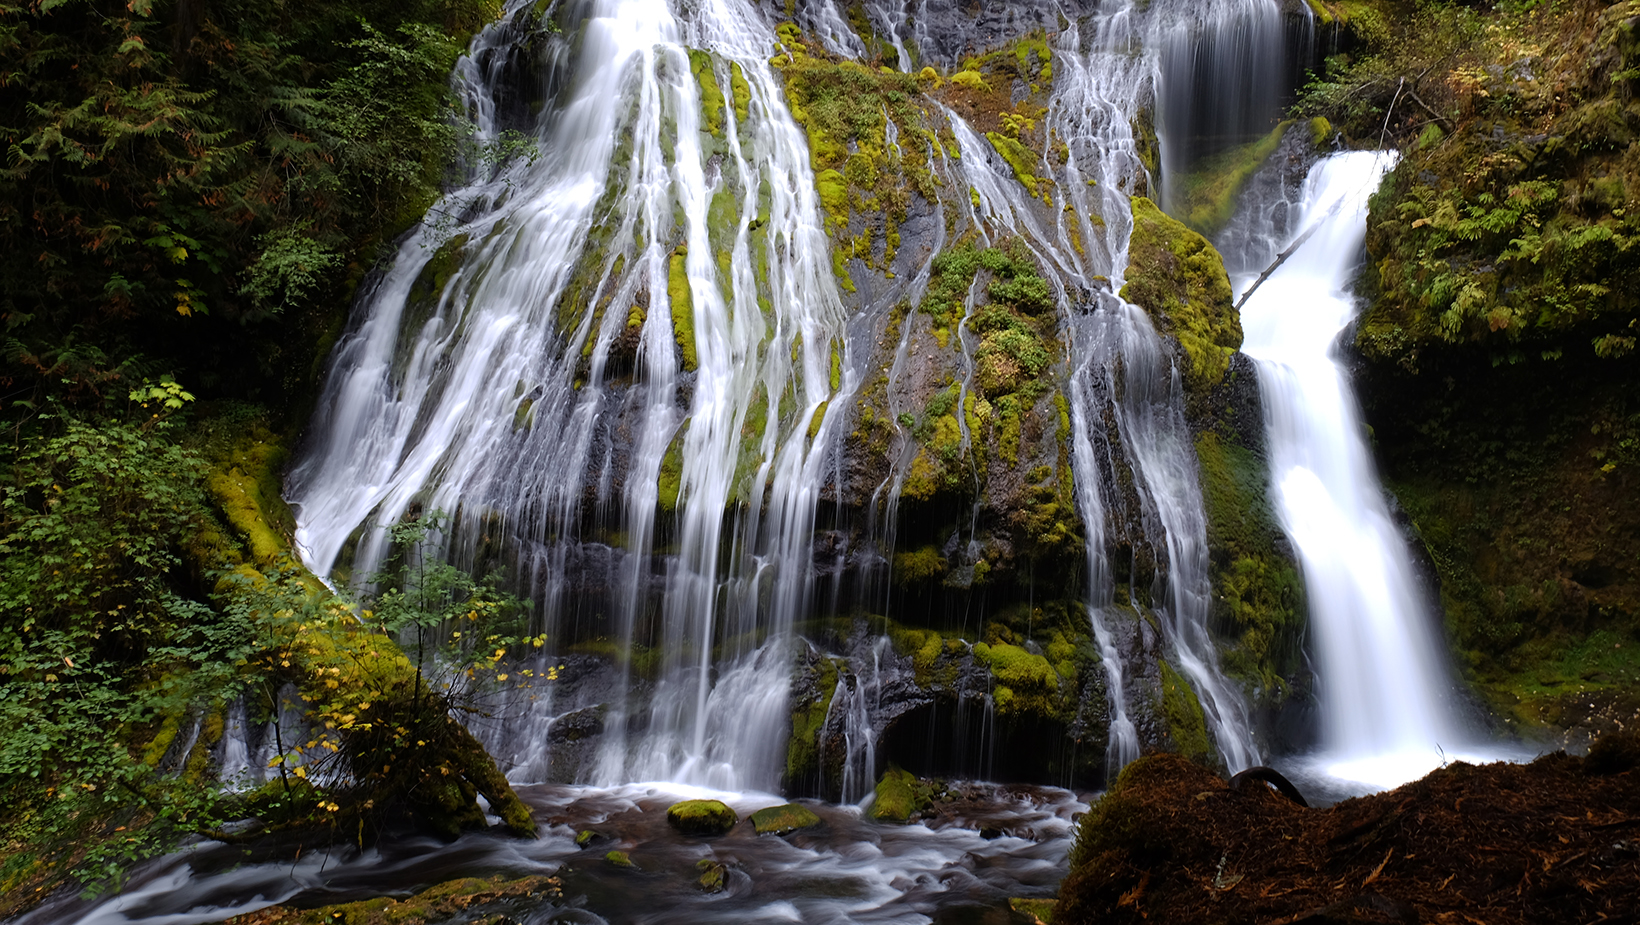 A mossy view of Panther Creek Waterfalls in the Gifford Pinchot National Forest